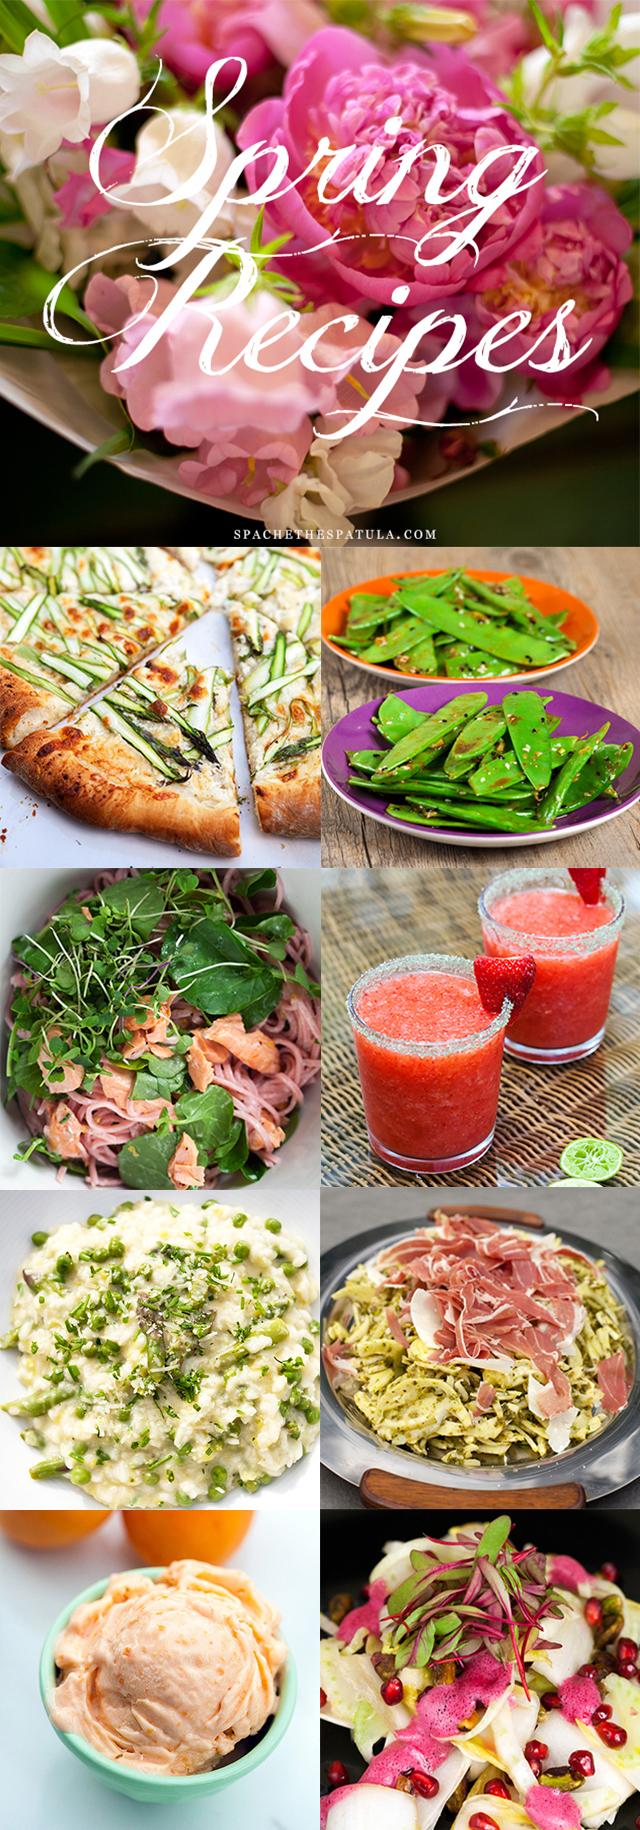 Dozens of recipes using Spring produce, organized by ingredient---everything from asparagus to watercress, sweet and savory! | spachethespatula.com #recipe